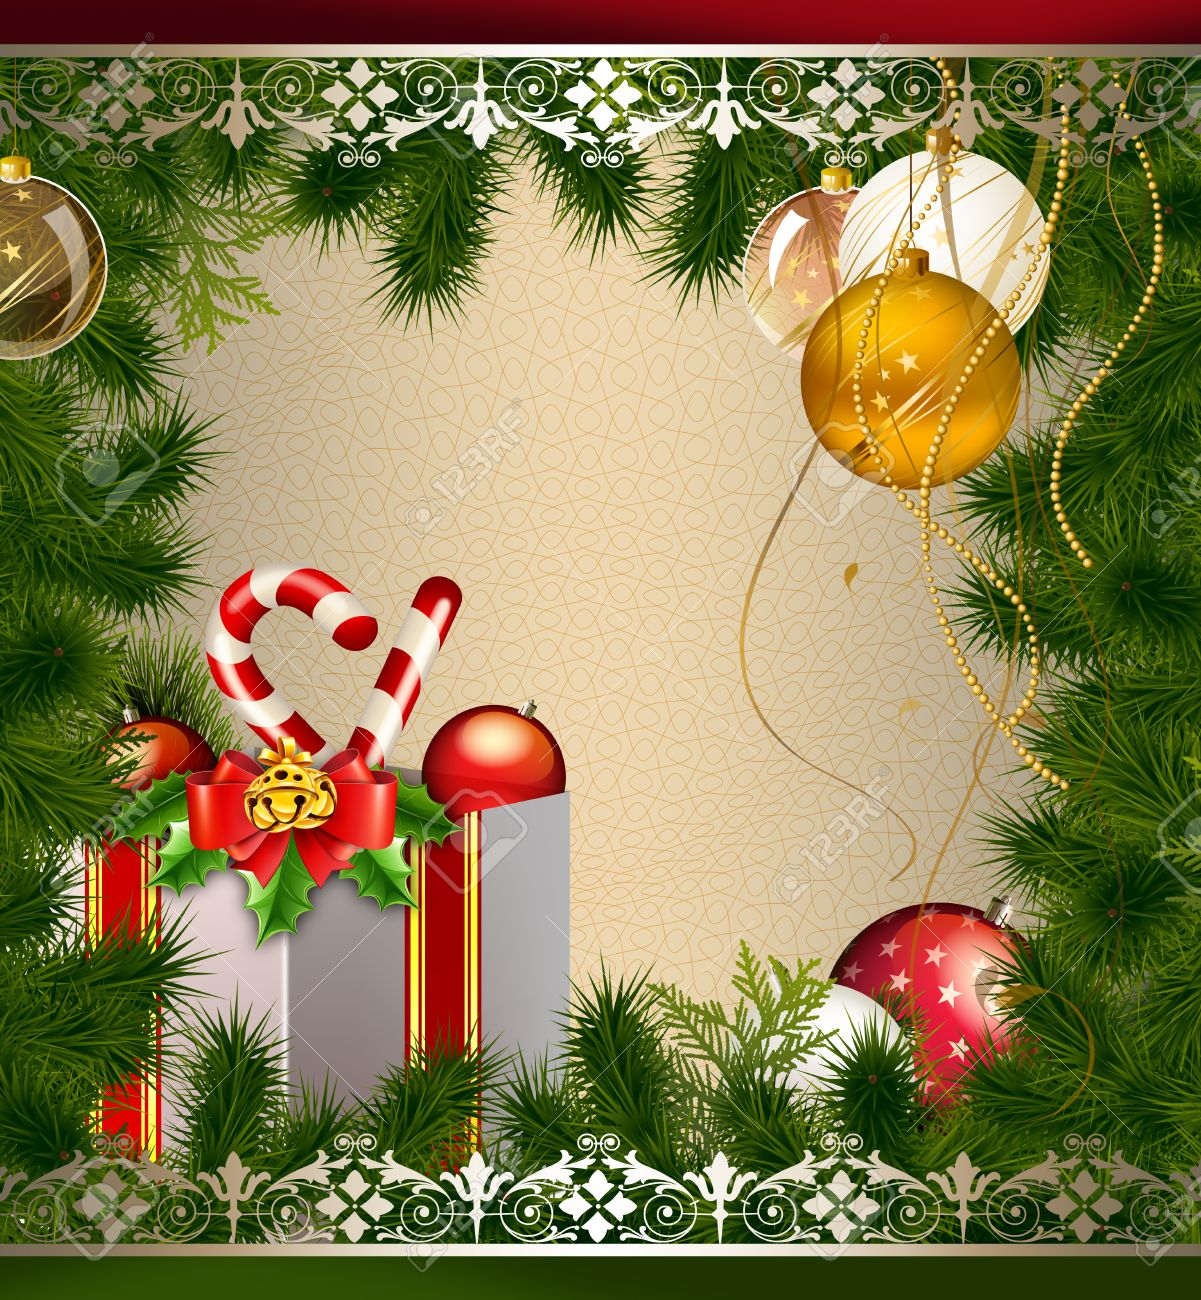 Decorative Background With Christmas Decorations And Christmas ...